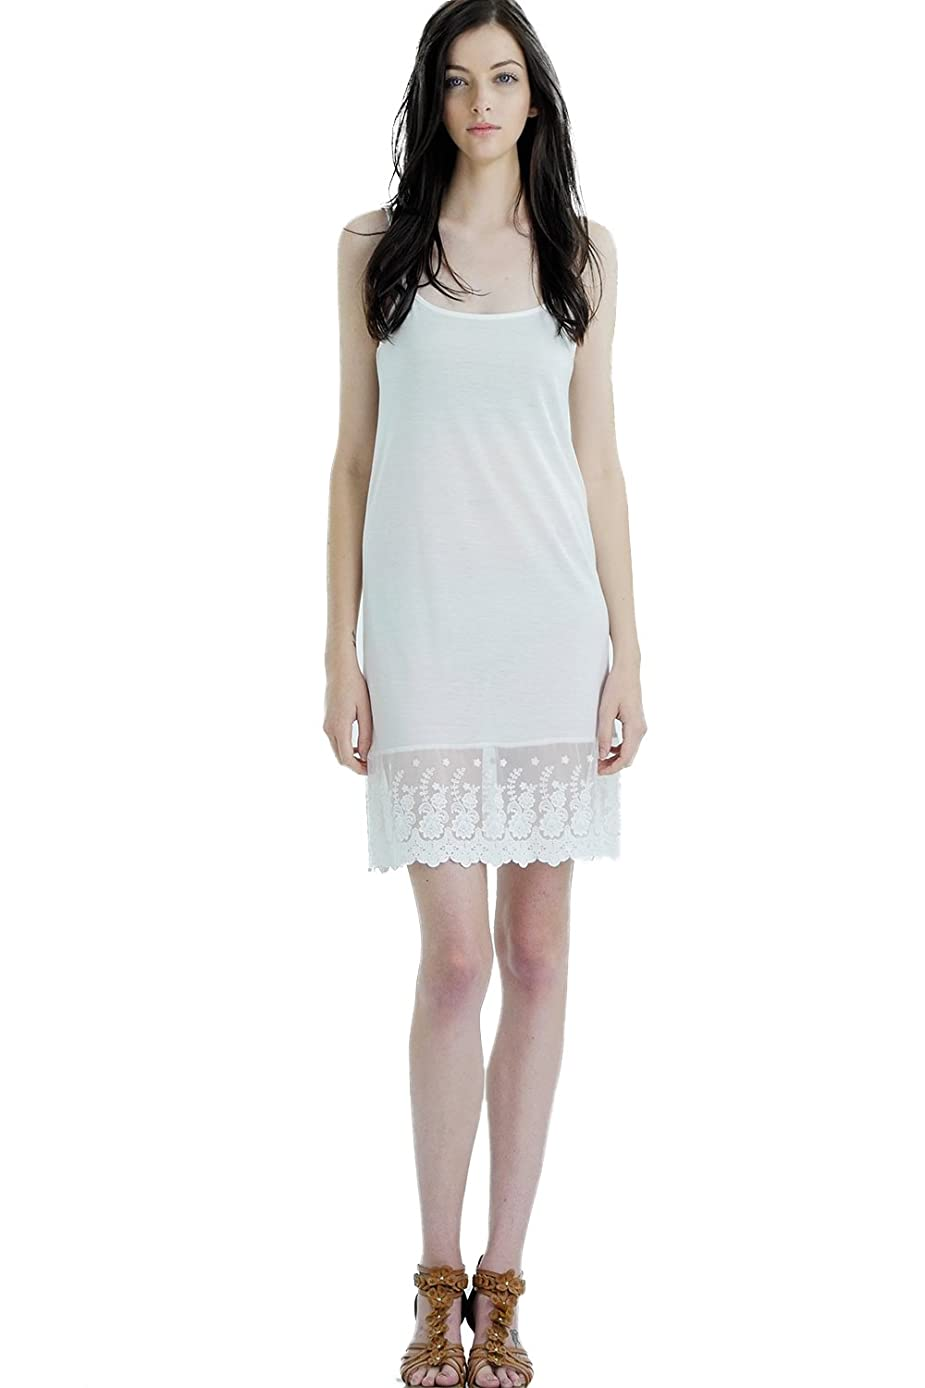 Women's Lace Knit Full Slip Extender for Short Dresses, Tunics and Sweaters